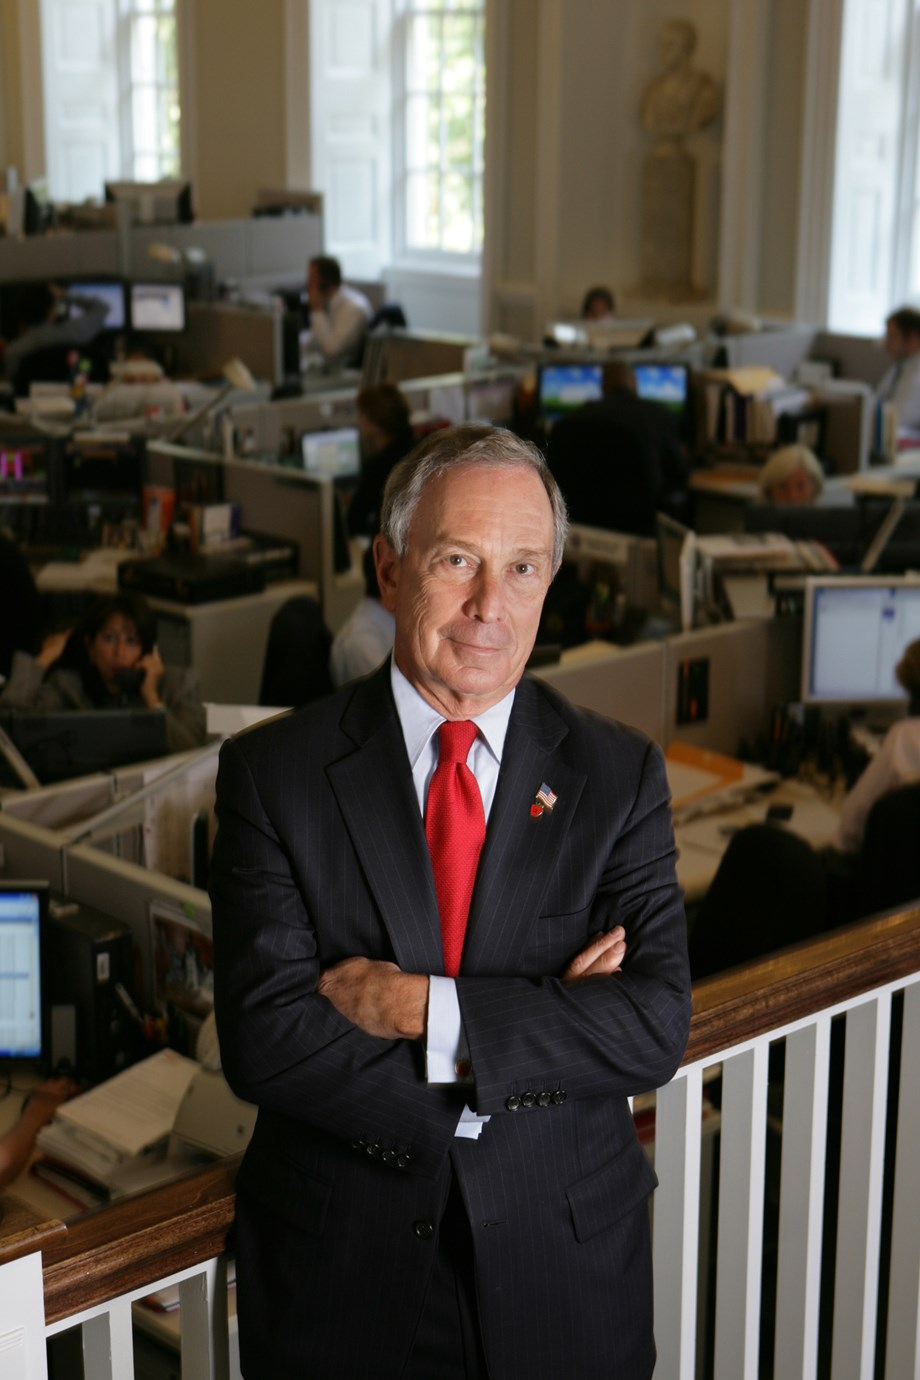 UPDATE 2-Bloomberg faces big challenges if he leaps into 2020 White House race